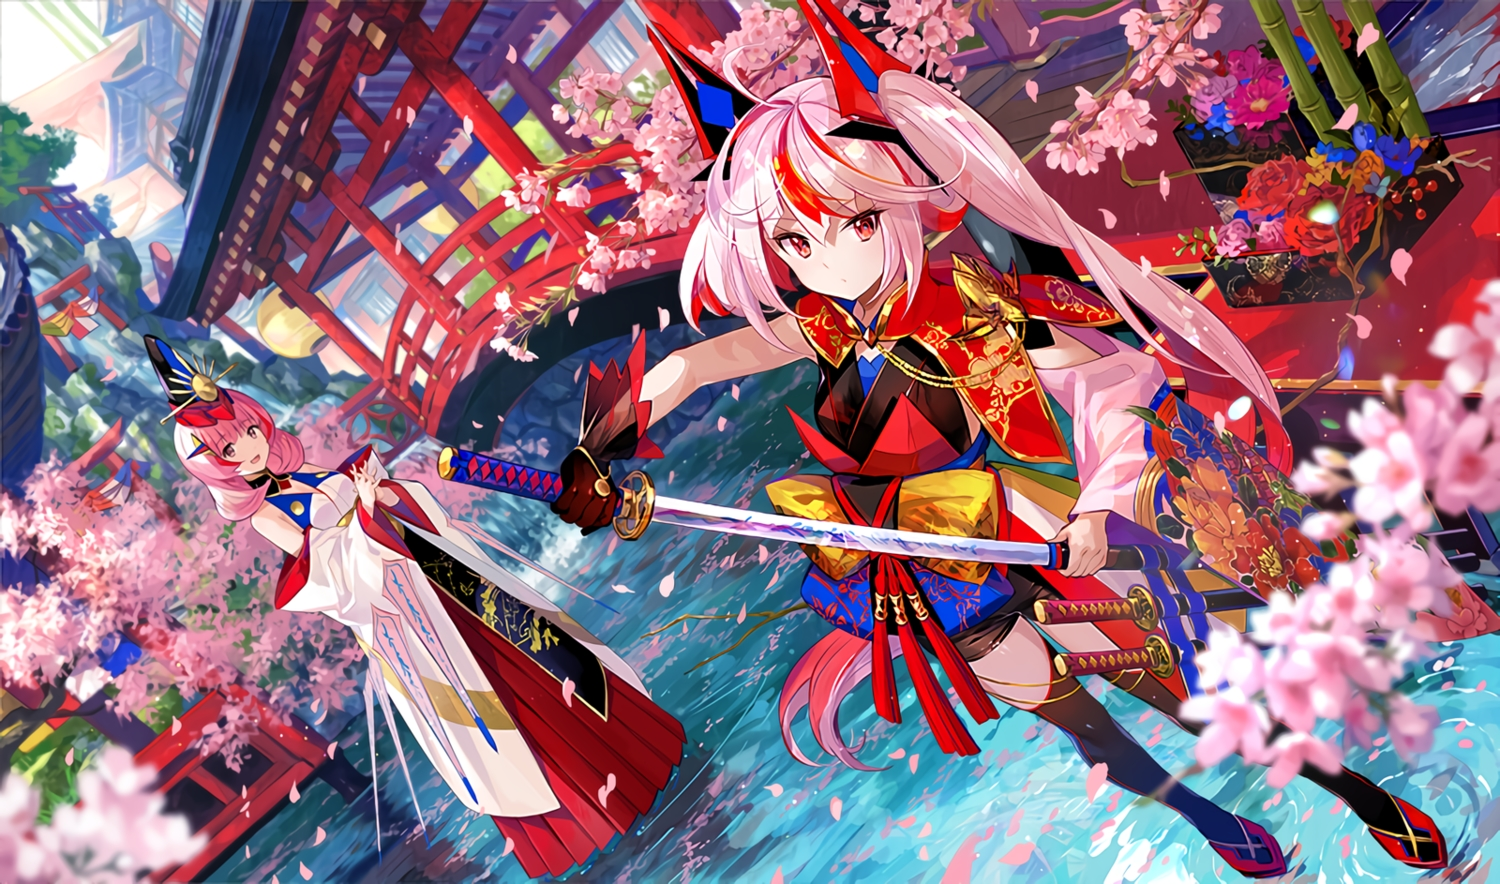 2girls building cherry_blossoms flowers fuji_choko japanese_clothes katana long_hair original pink_hair red_eyes sword thighhighs torii waifu2x water weapon